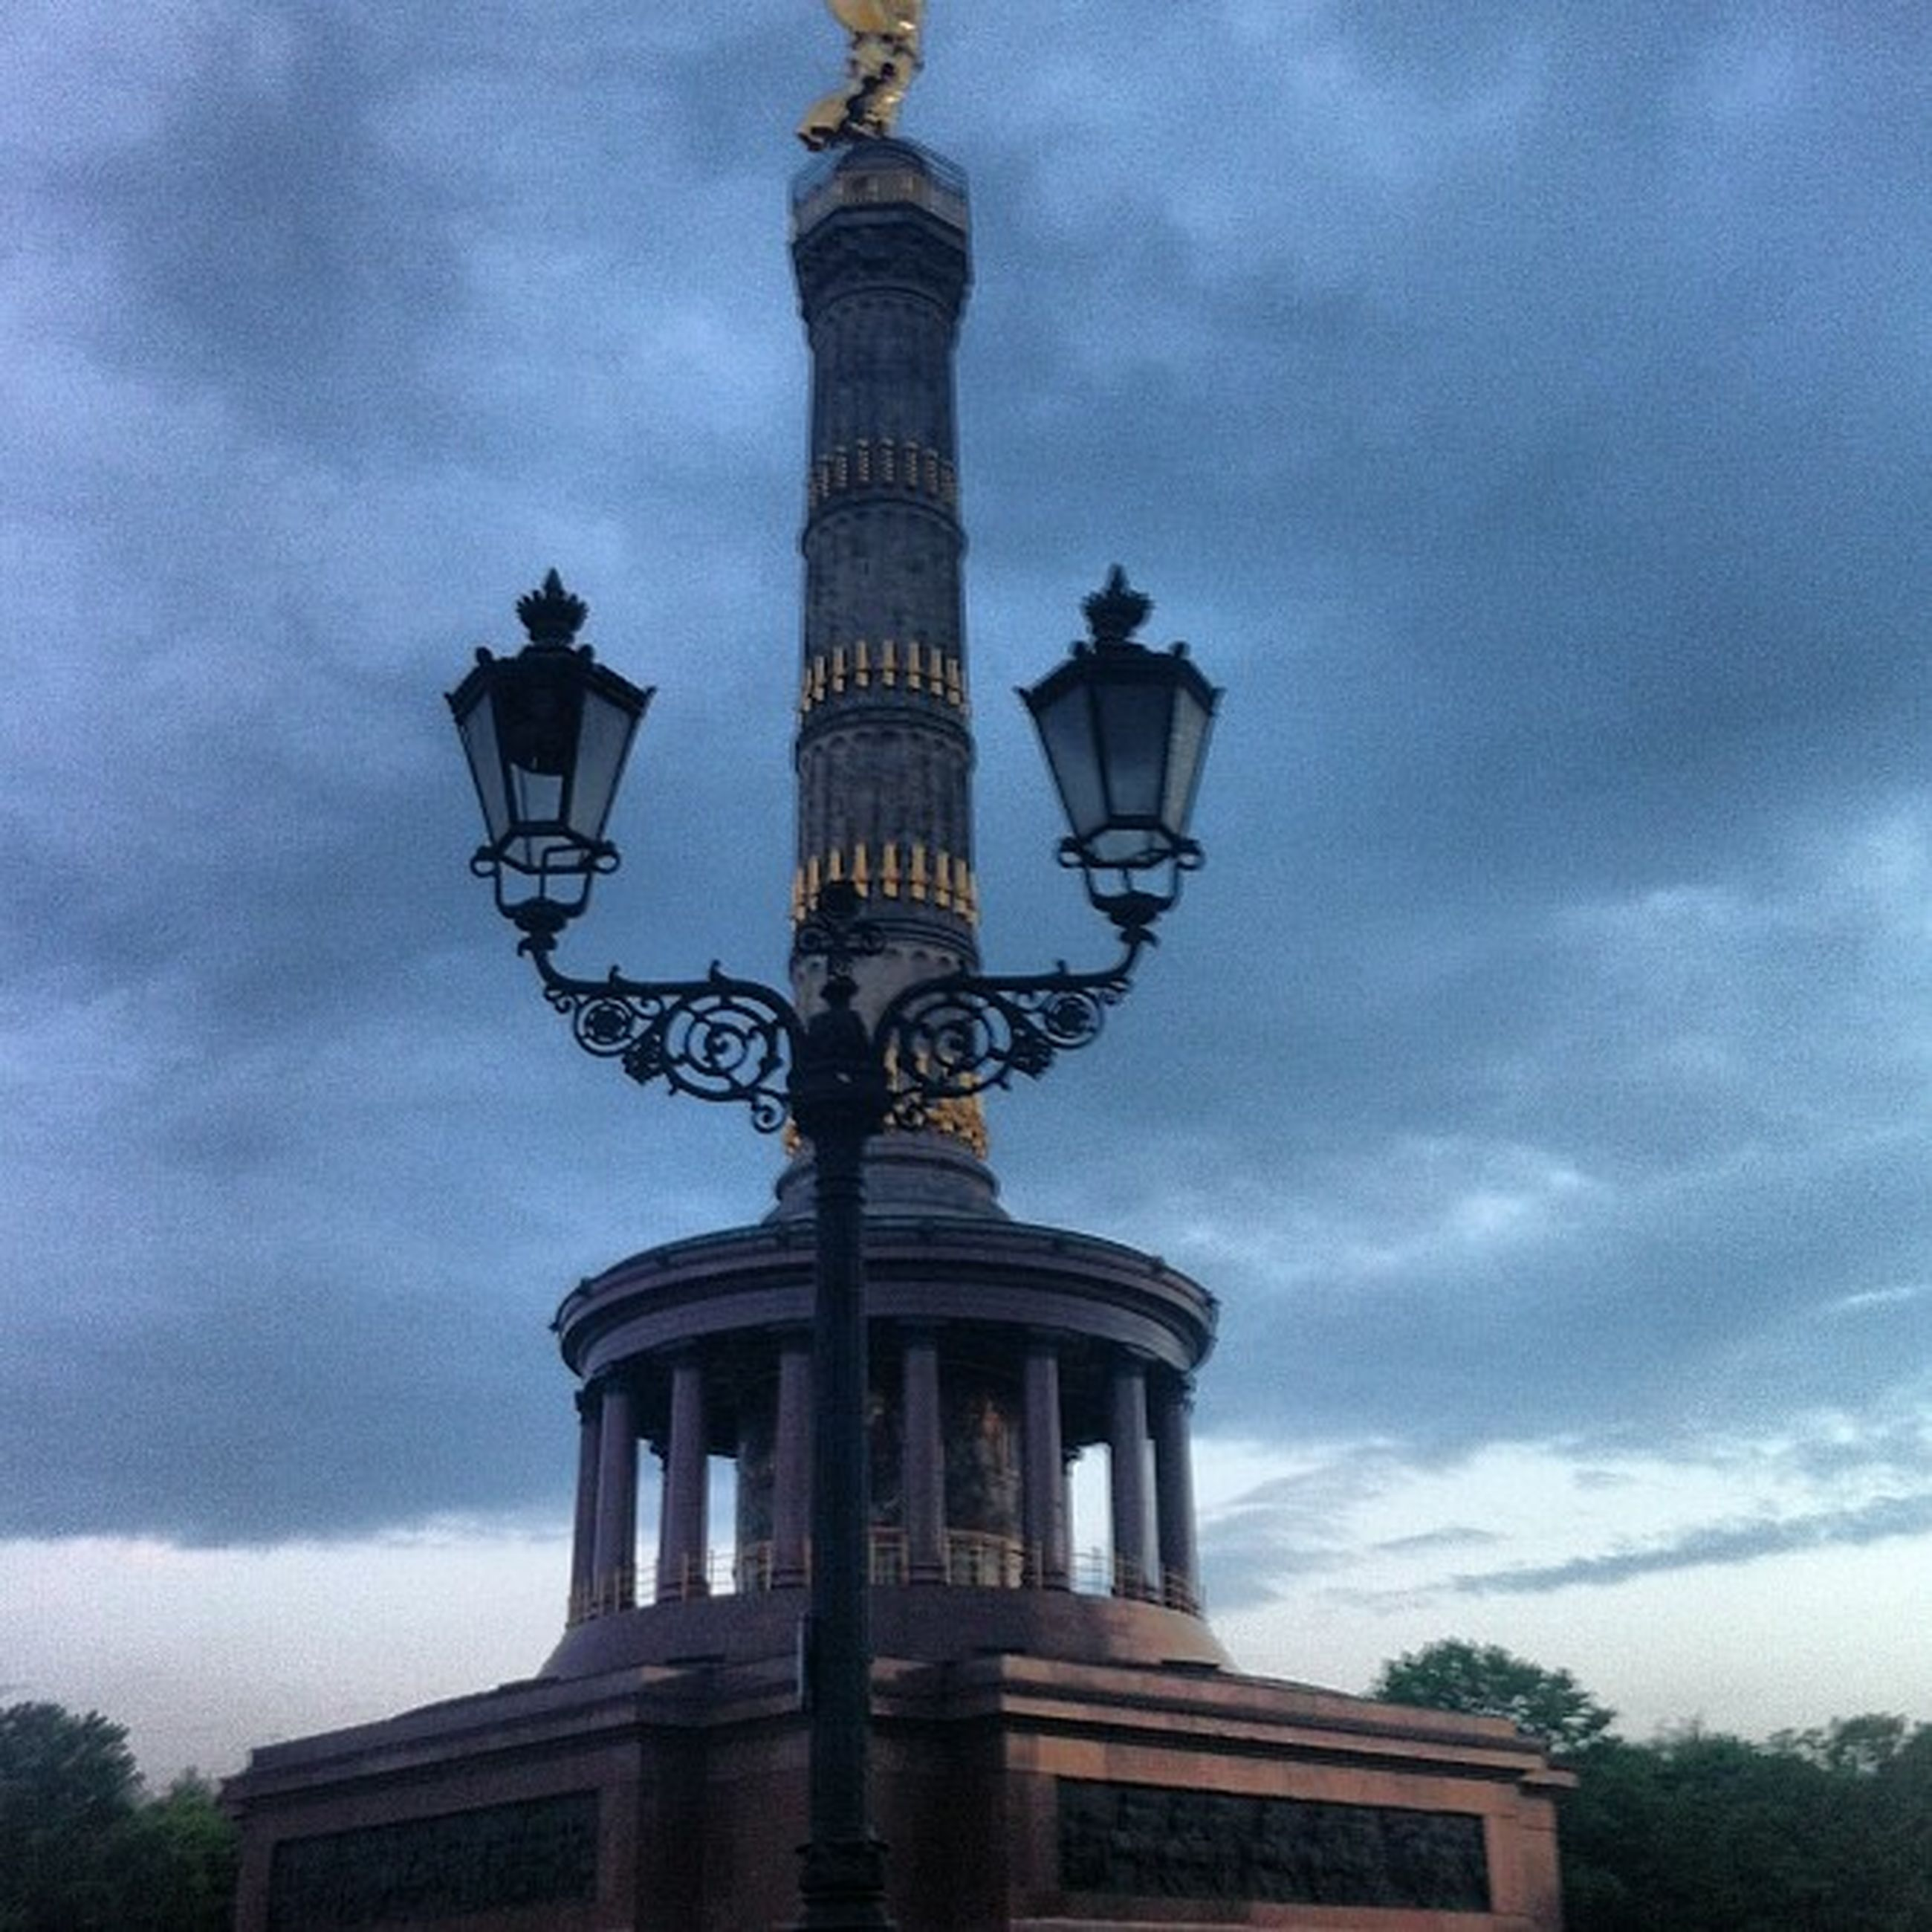 low angle view, sky, built structure, cloud - sky, architecture, building exterior, cloudy, cloud, street light, lighting equipment, high section, no people, outdoors, day, overcast, weather, cross, lamp post, building, dusk